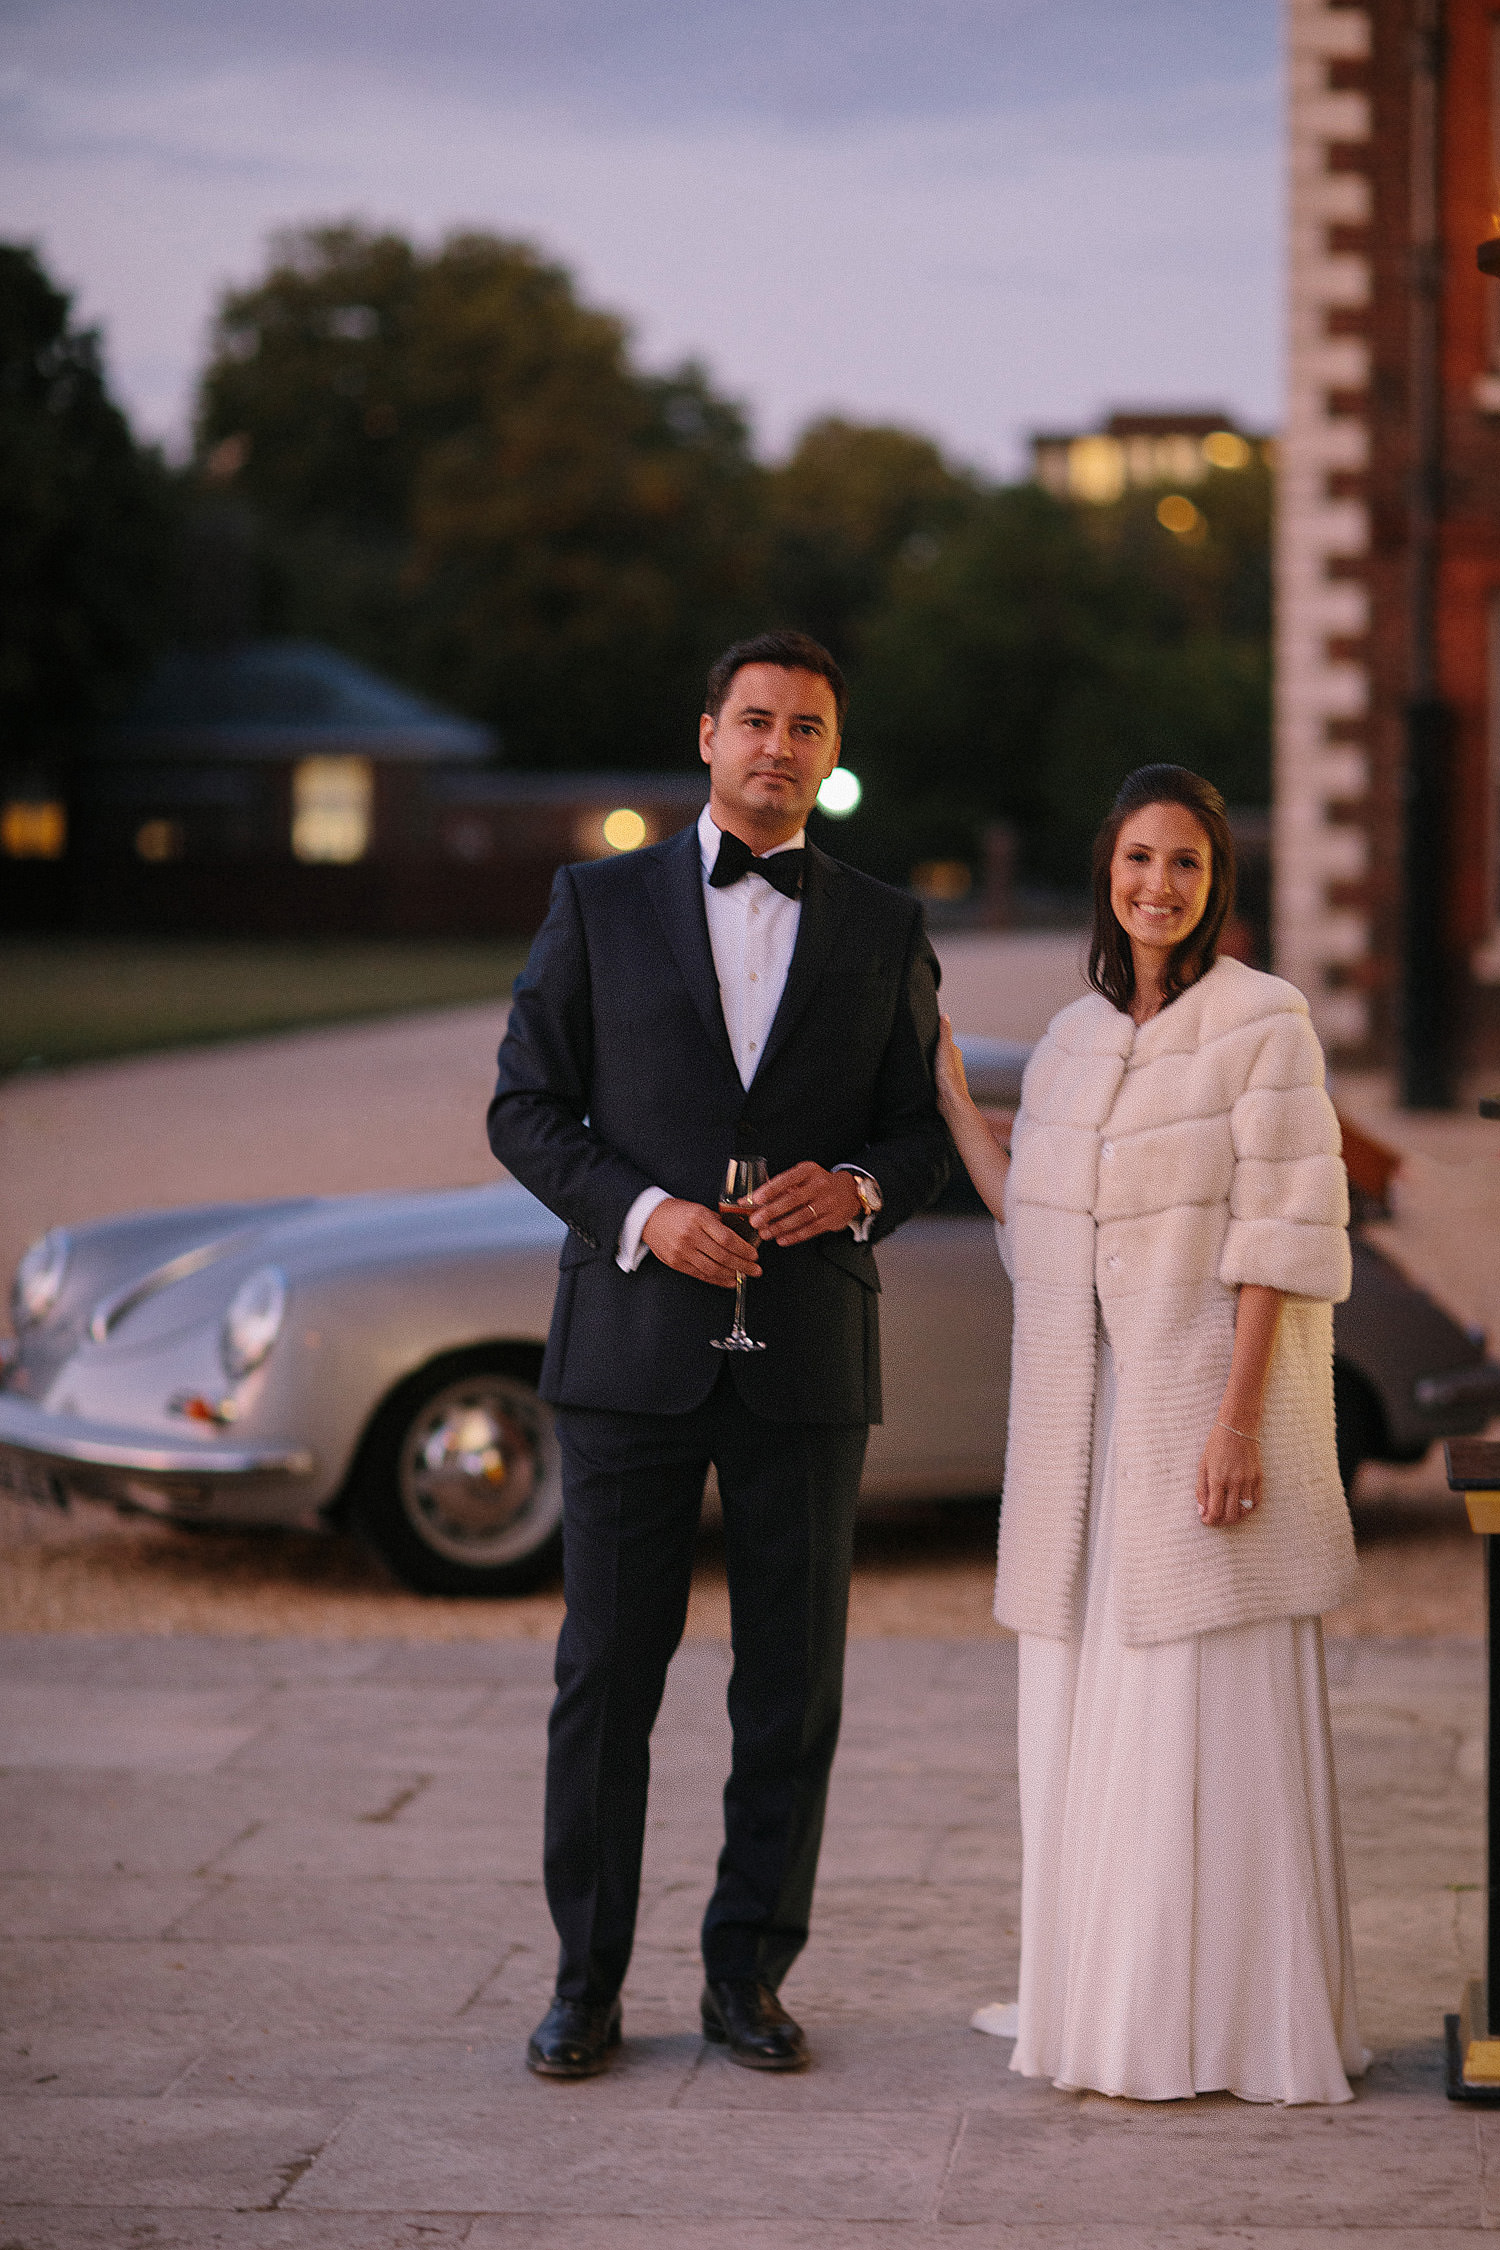 bride wearing warm white coat waits in evening light with groom